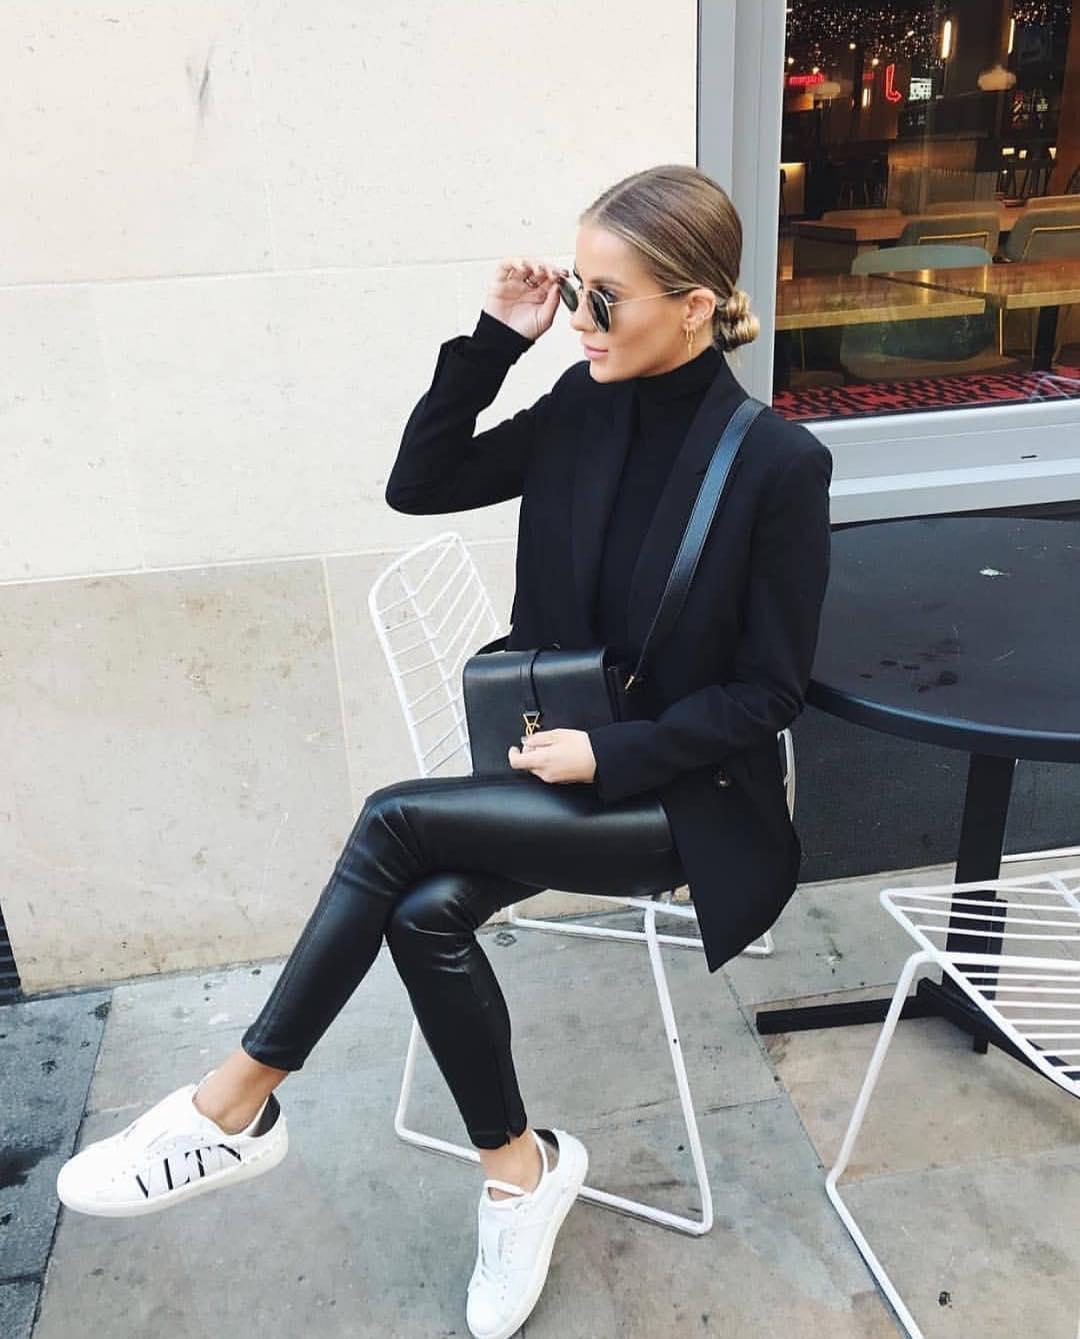 How To Wear Black Leather Pants With White Sneakers 2019